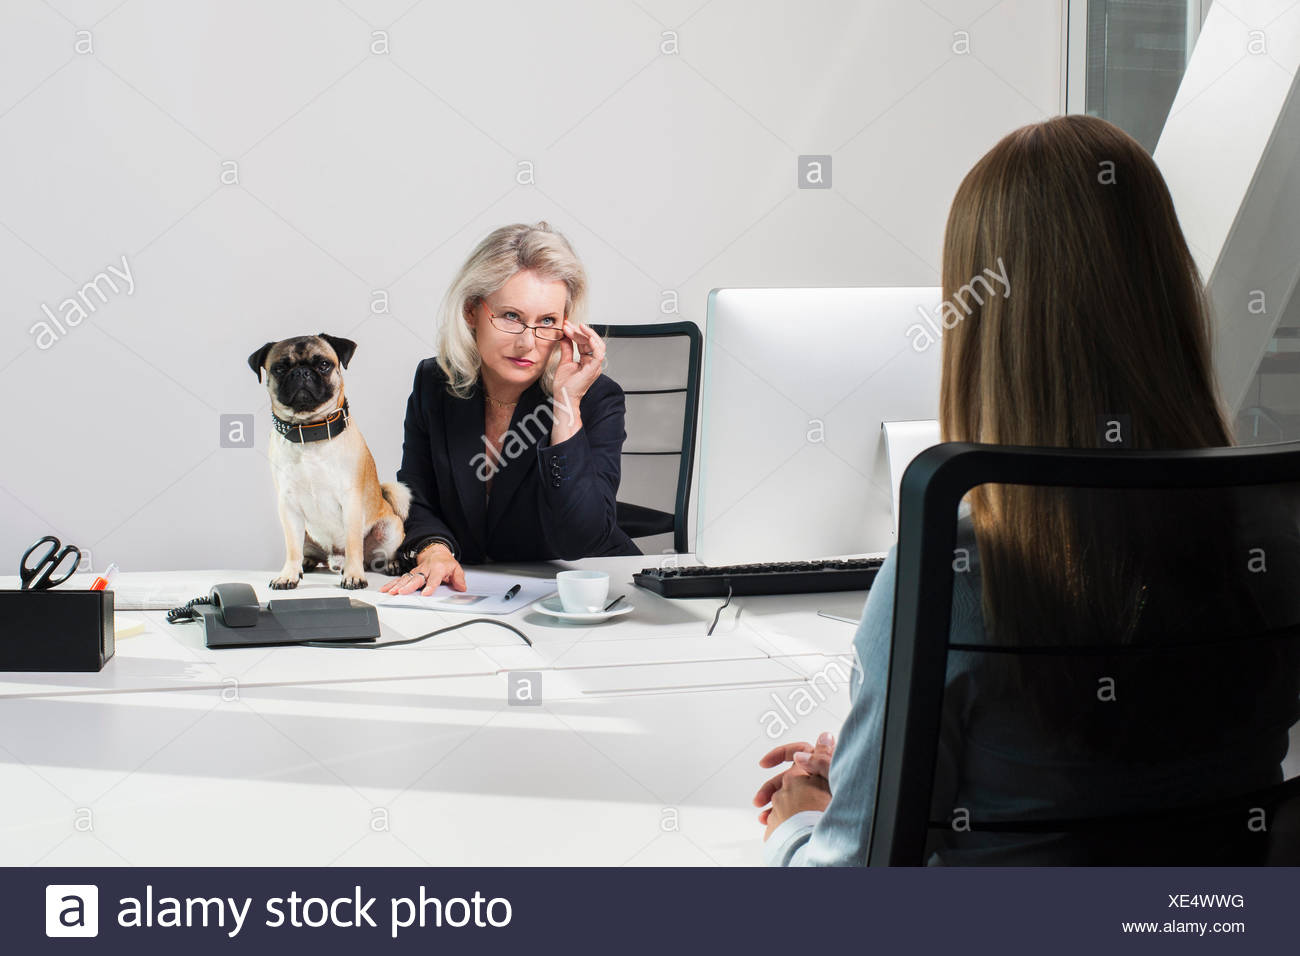 Female manager with dog interviewing woman - Stock Image